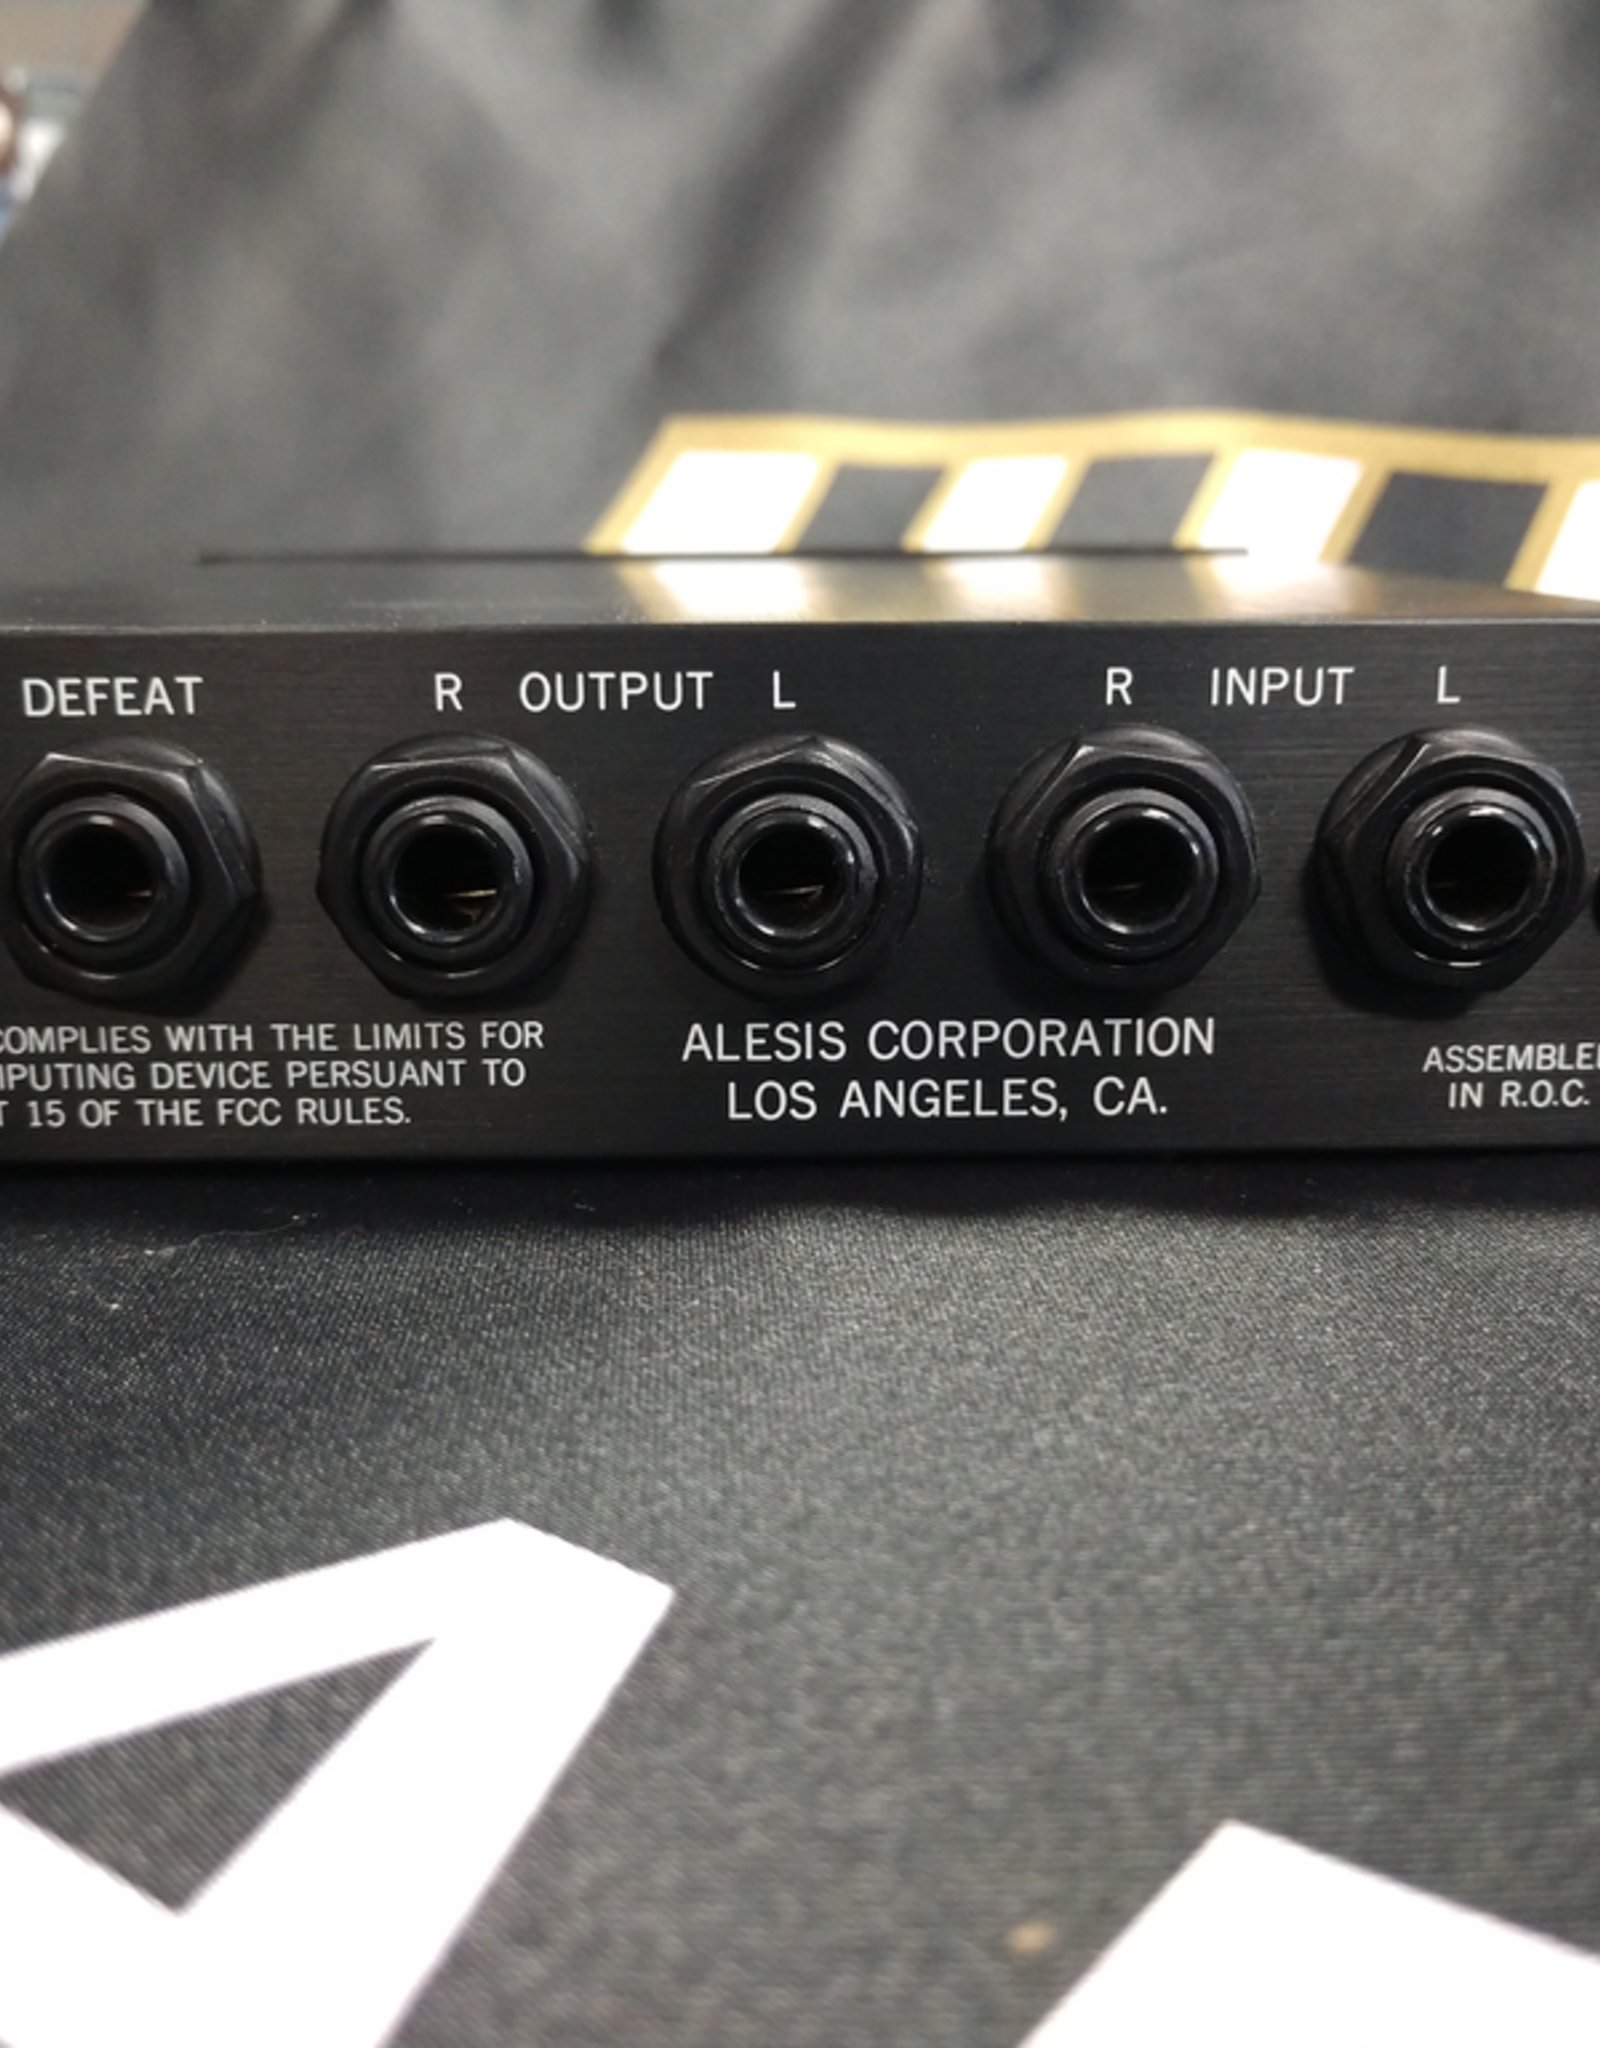 Alesis Microverb 2 - Stereo IN/OUT Reverb Unit. Two Gate Settings. Multiple Small, Medium, and Large Room Reverb Settings.